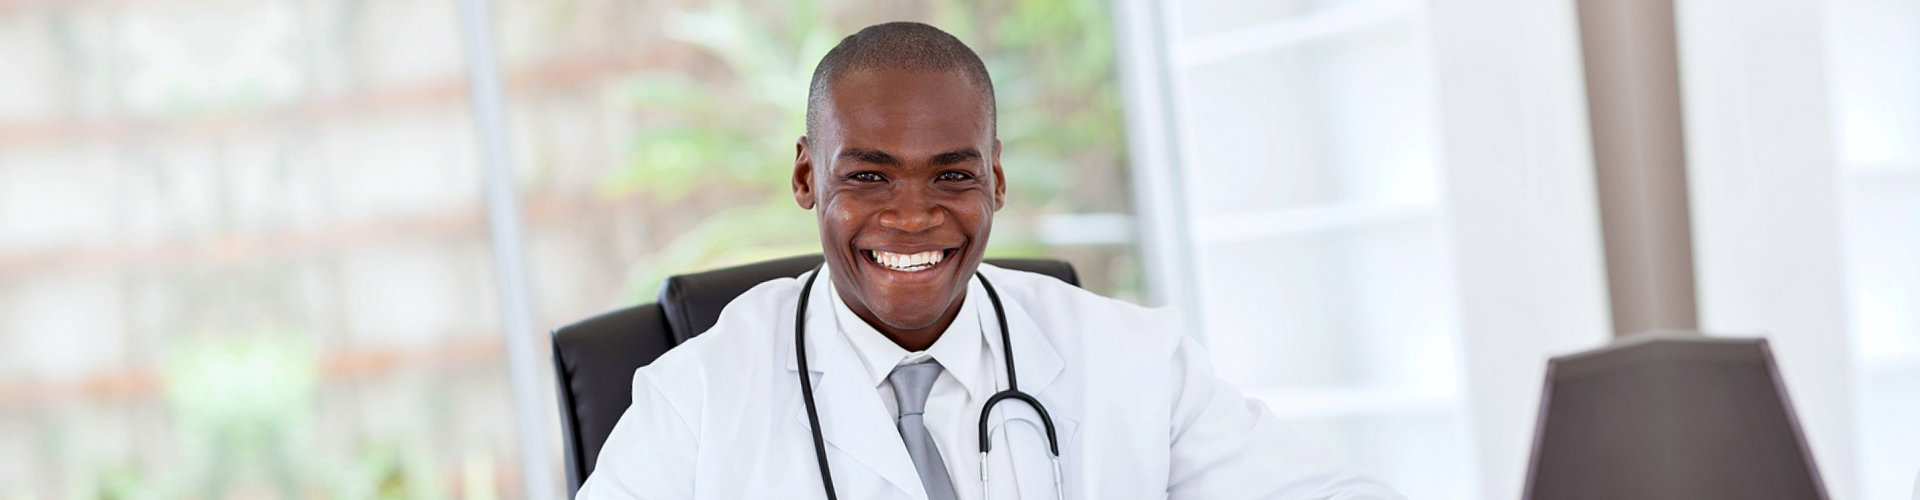 happy doctor in his office